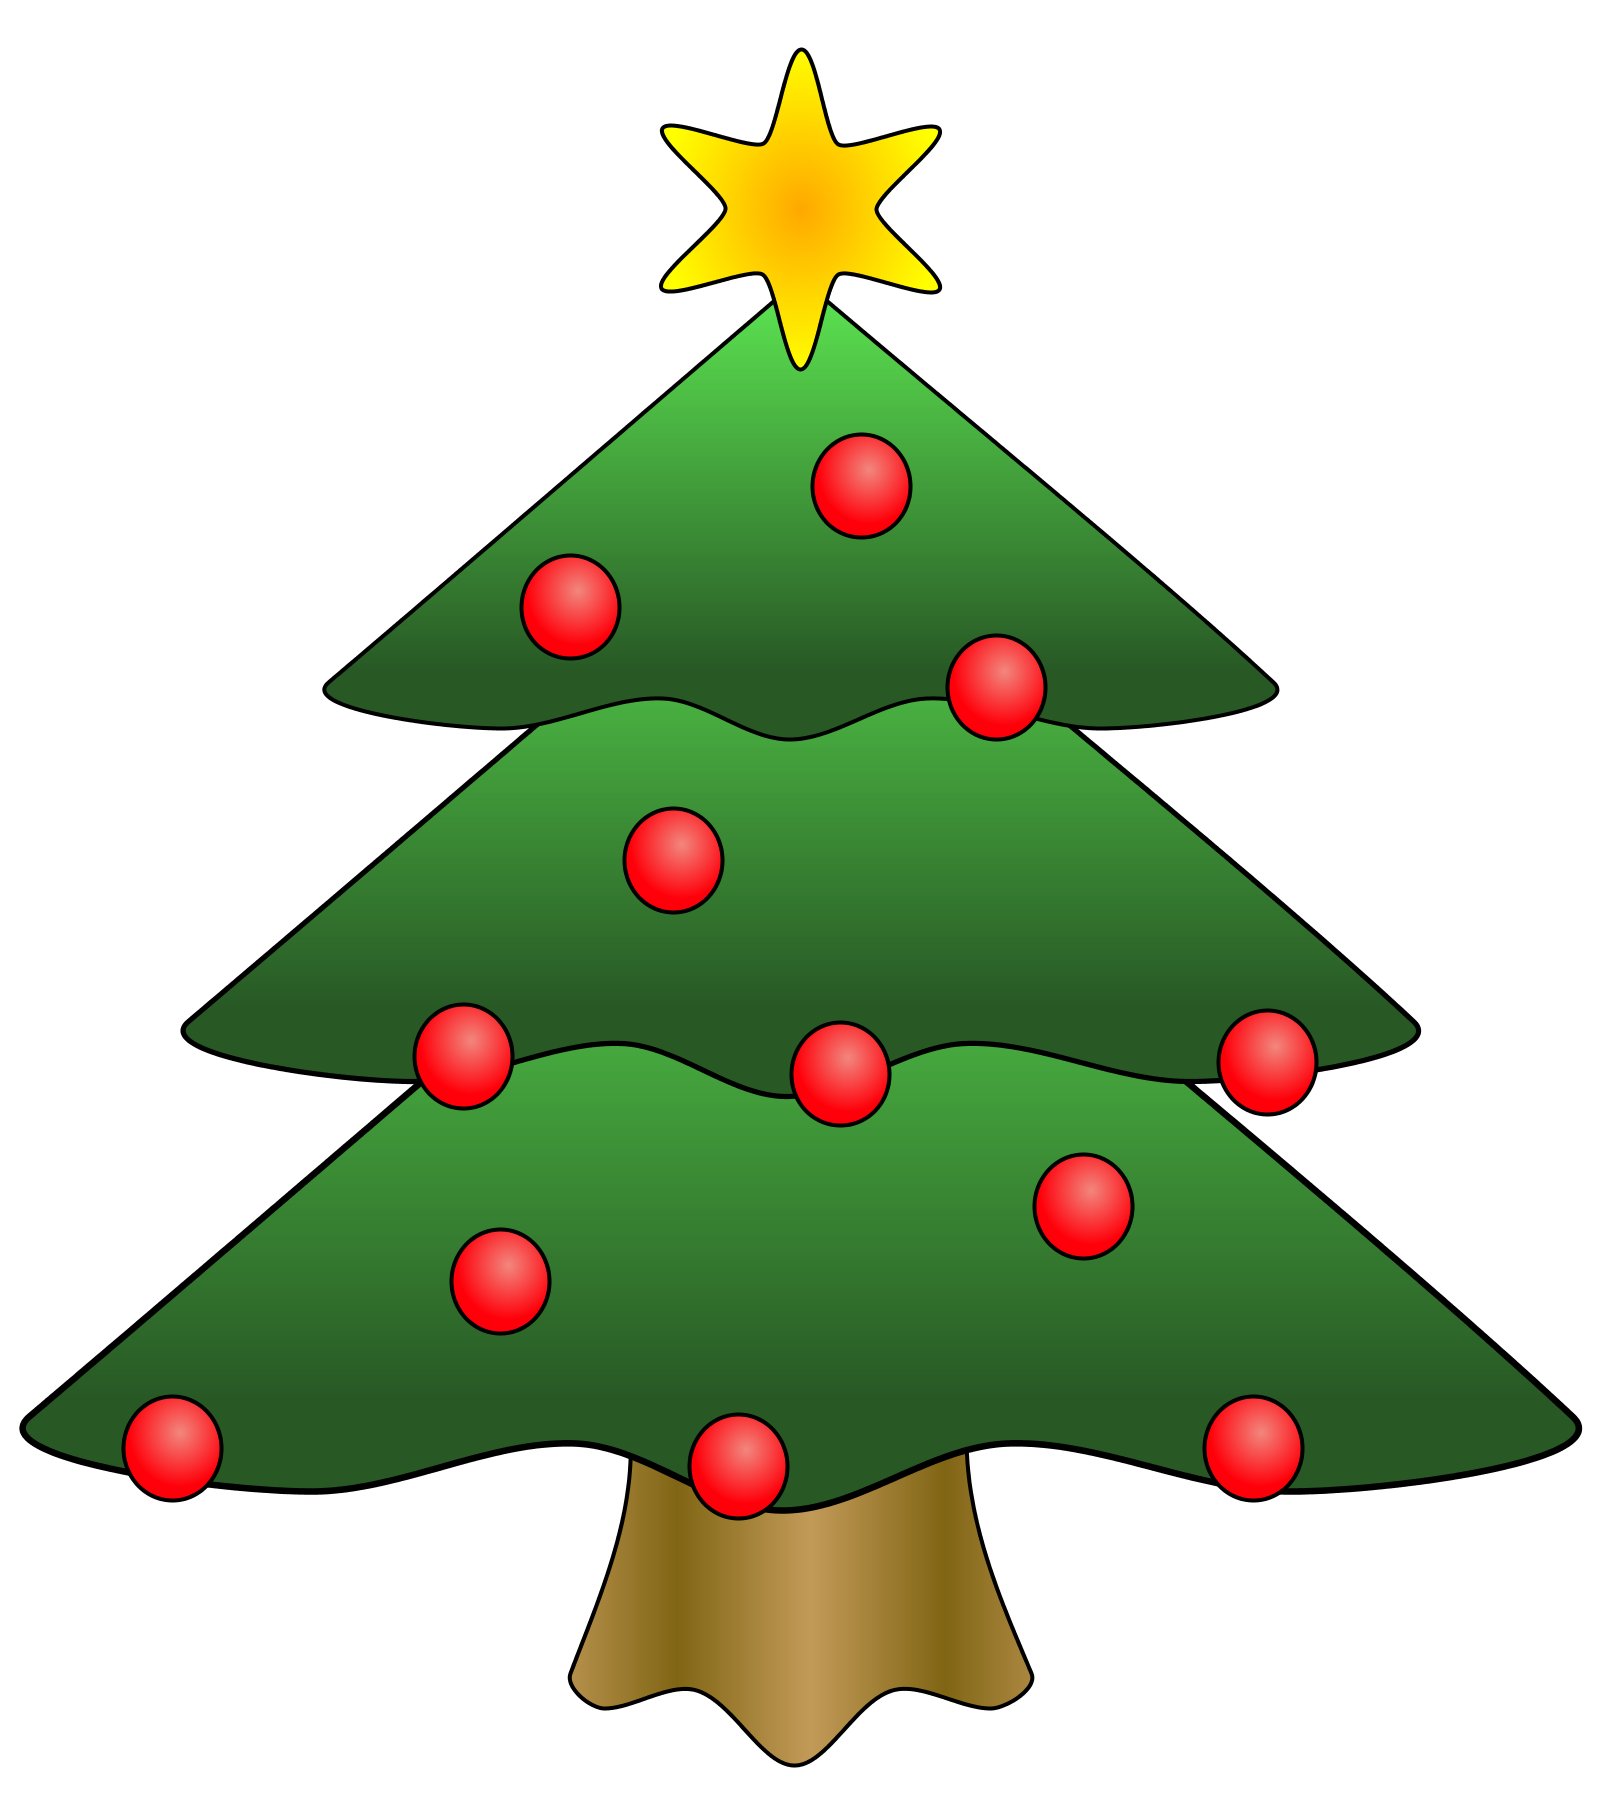 Free christmas tree clip art borders decorated christmas tree clipart